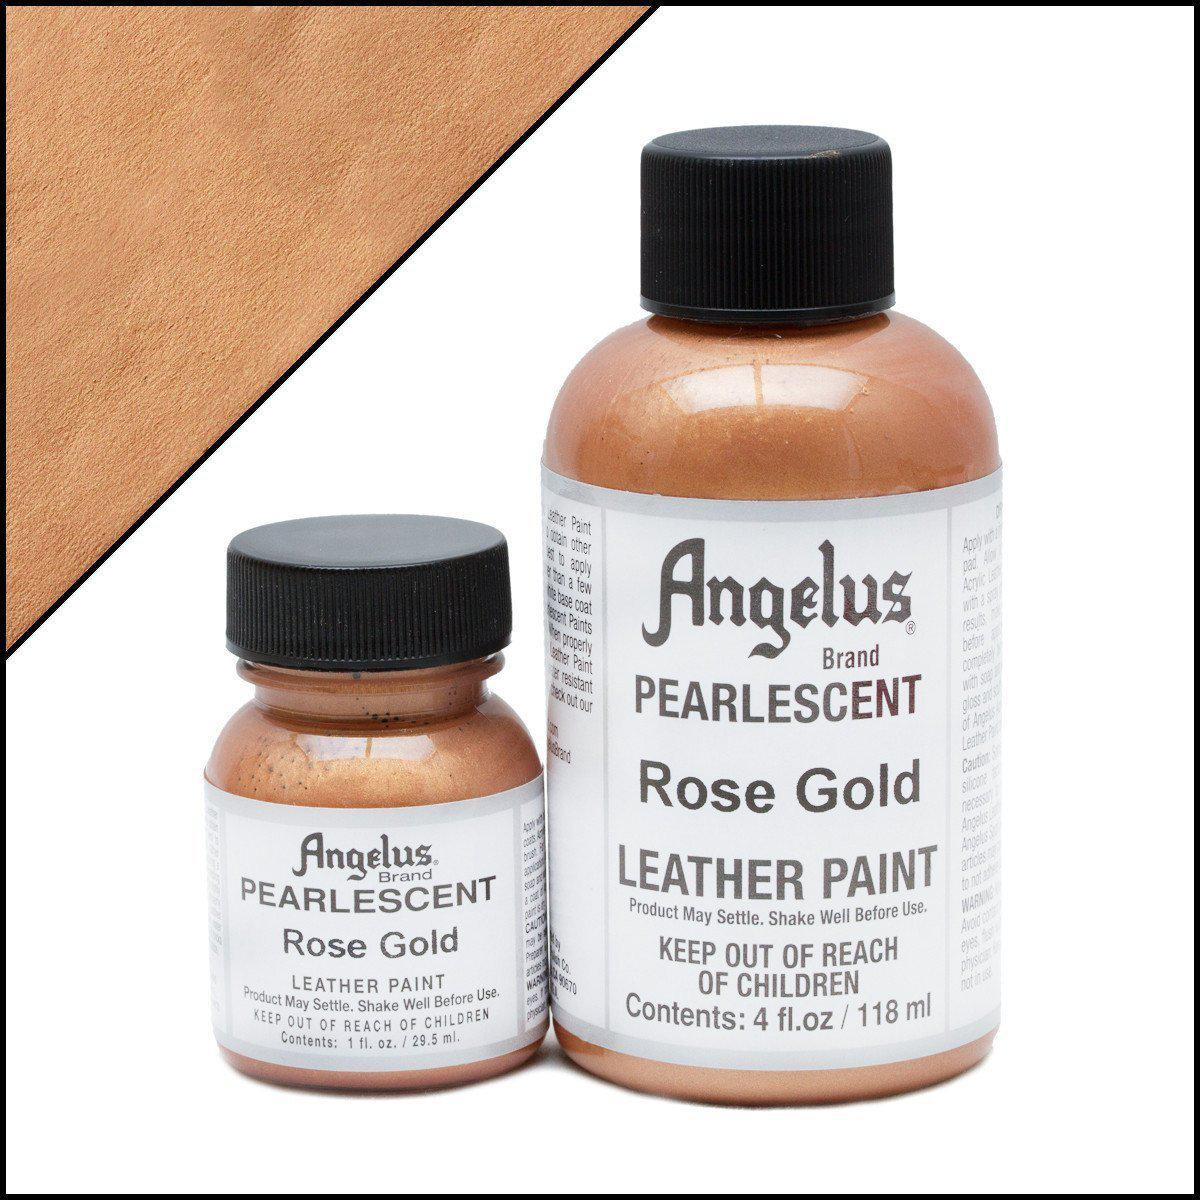 Rose Gold-Angelus-Pearlescent Leather Paint-TorontoCollective